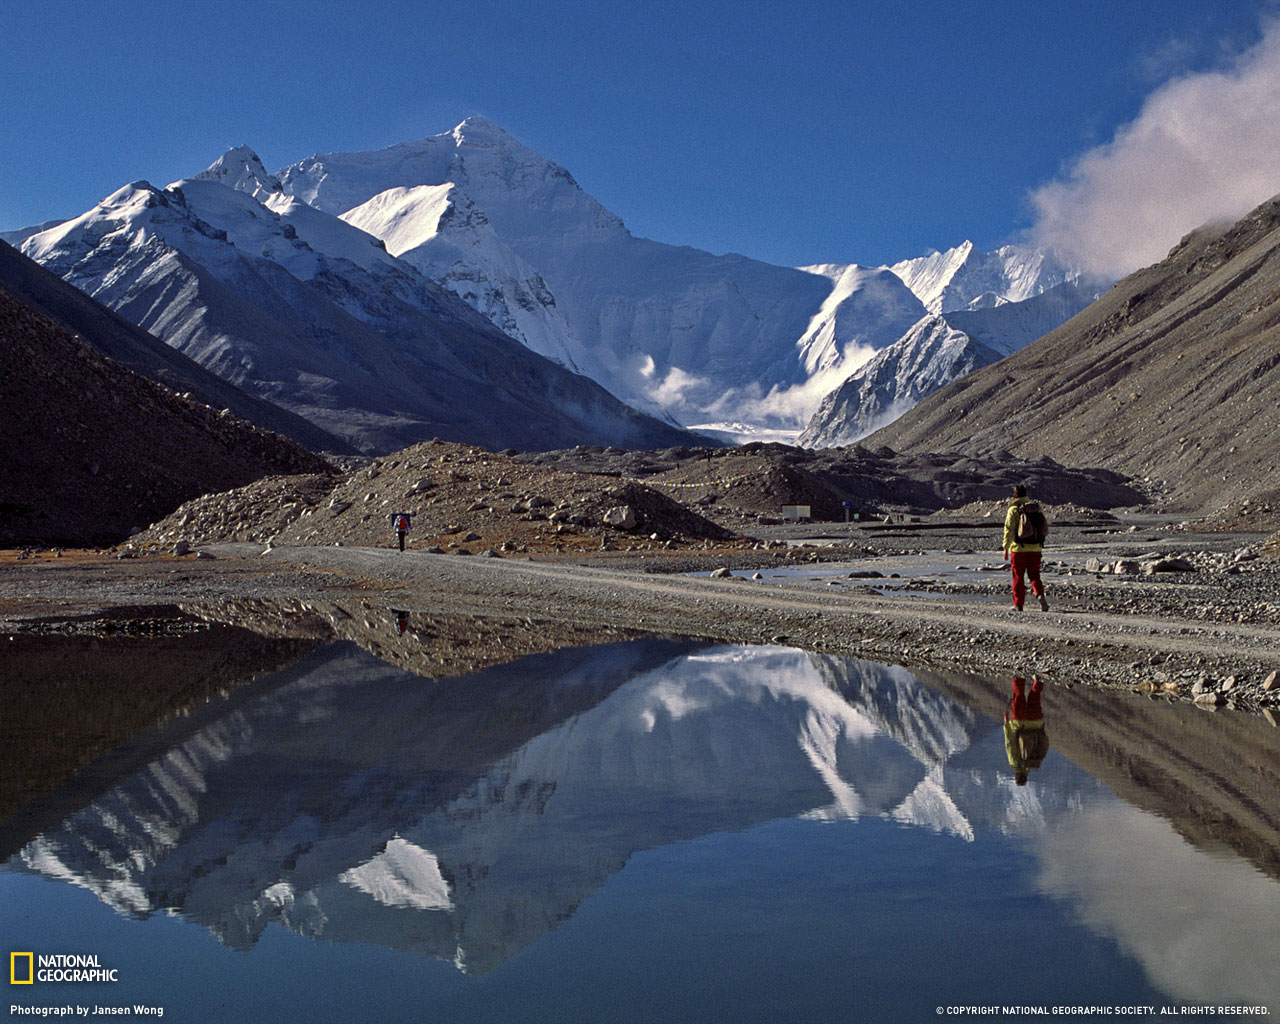 Mountain Reflection Picture Tibet Wallpaper    National Geographic 1280x1024